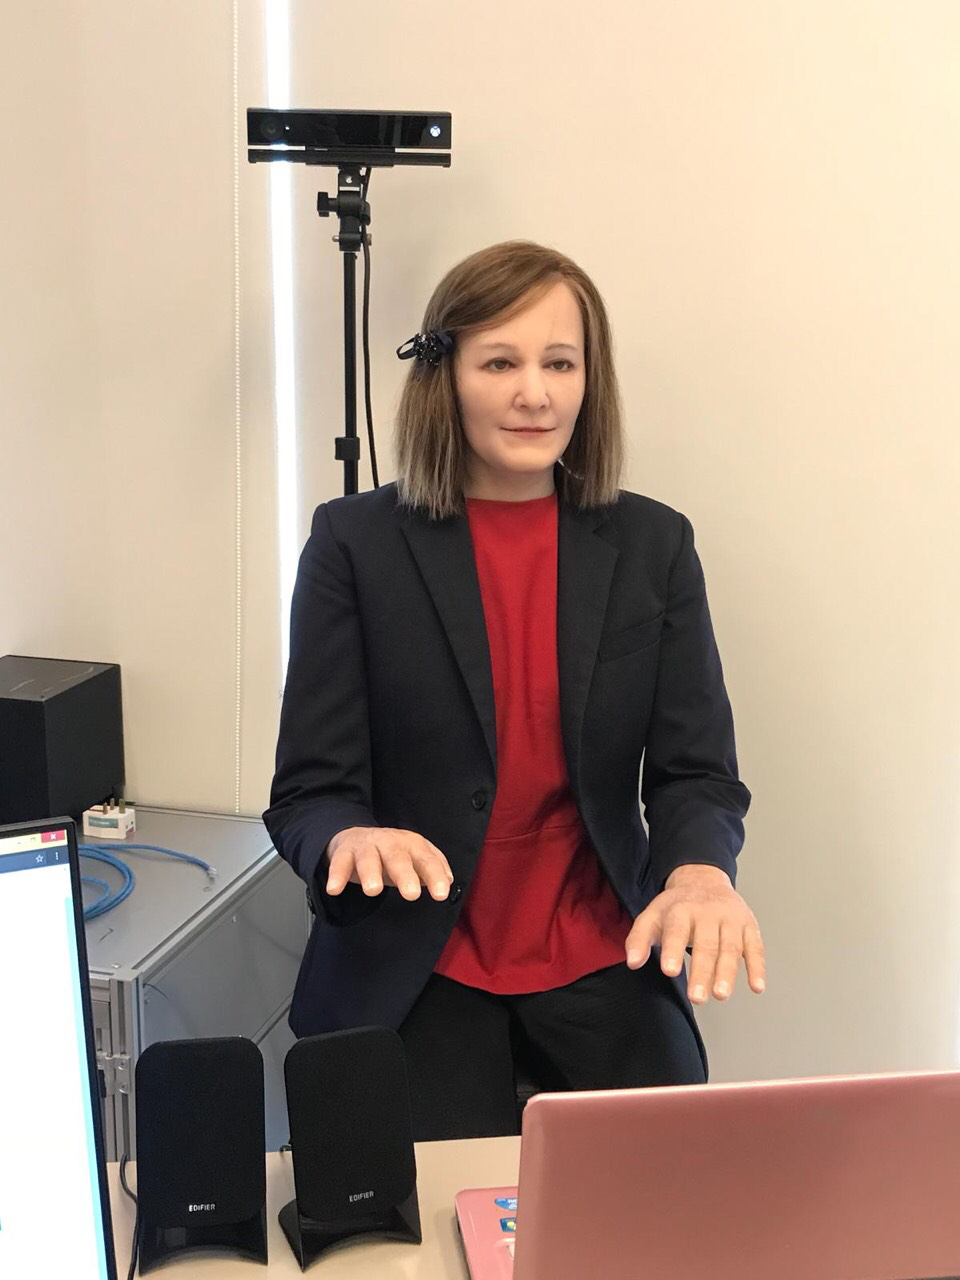 The social robot Nadine is working in the insurance company support desk since this October